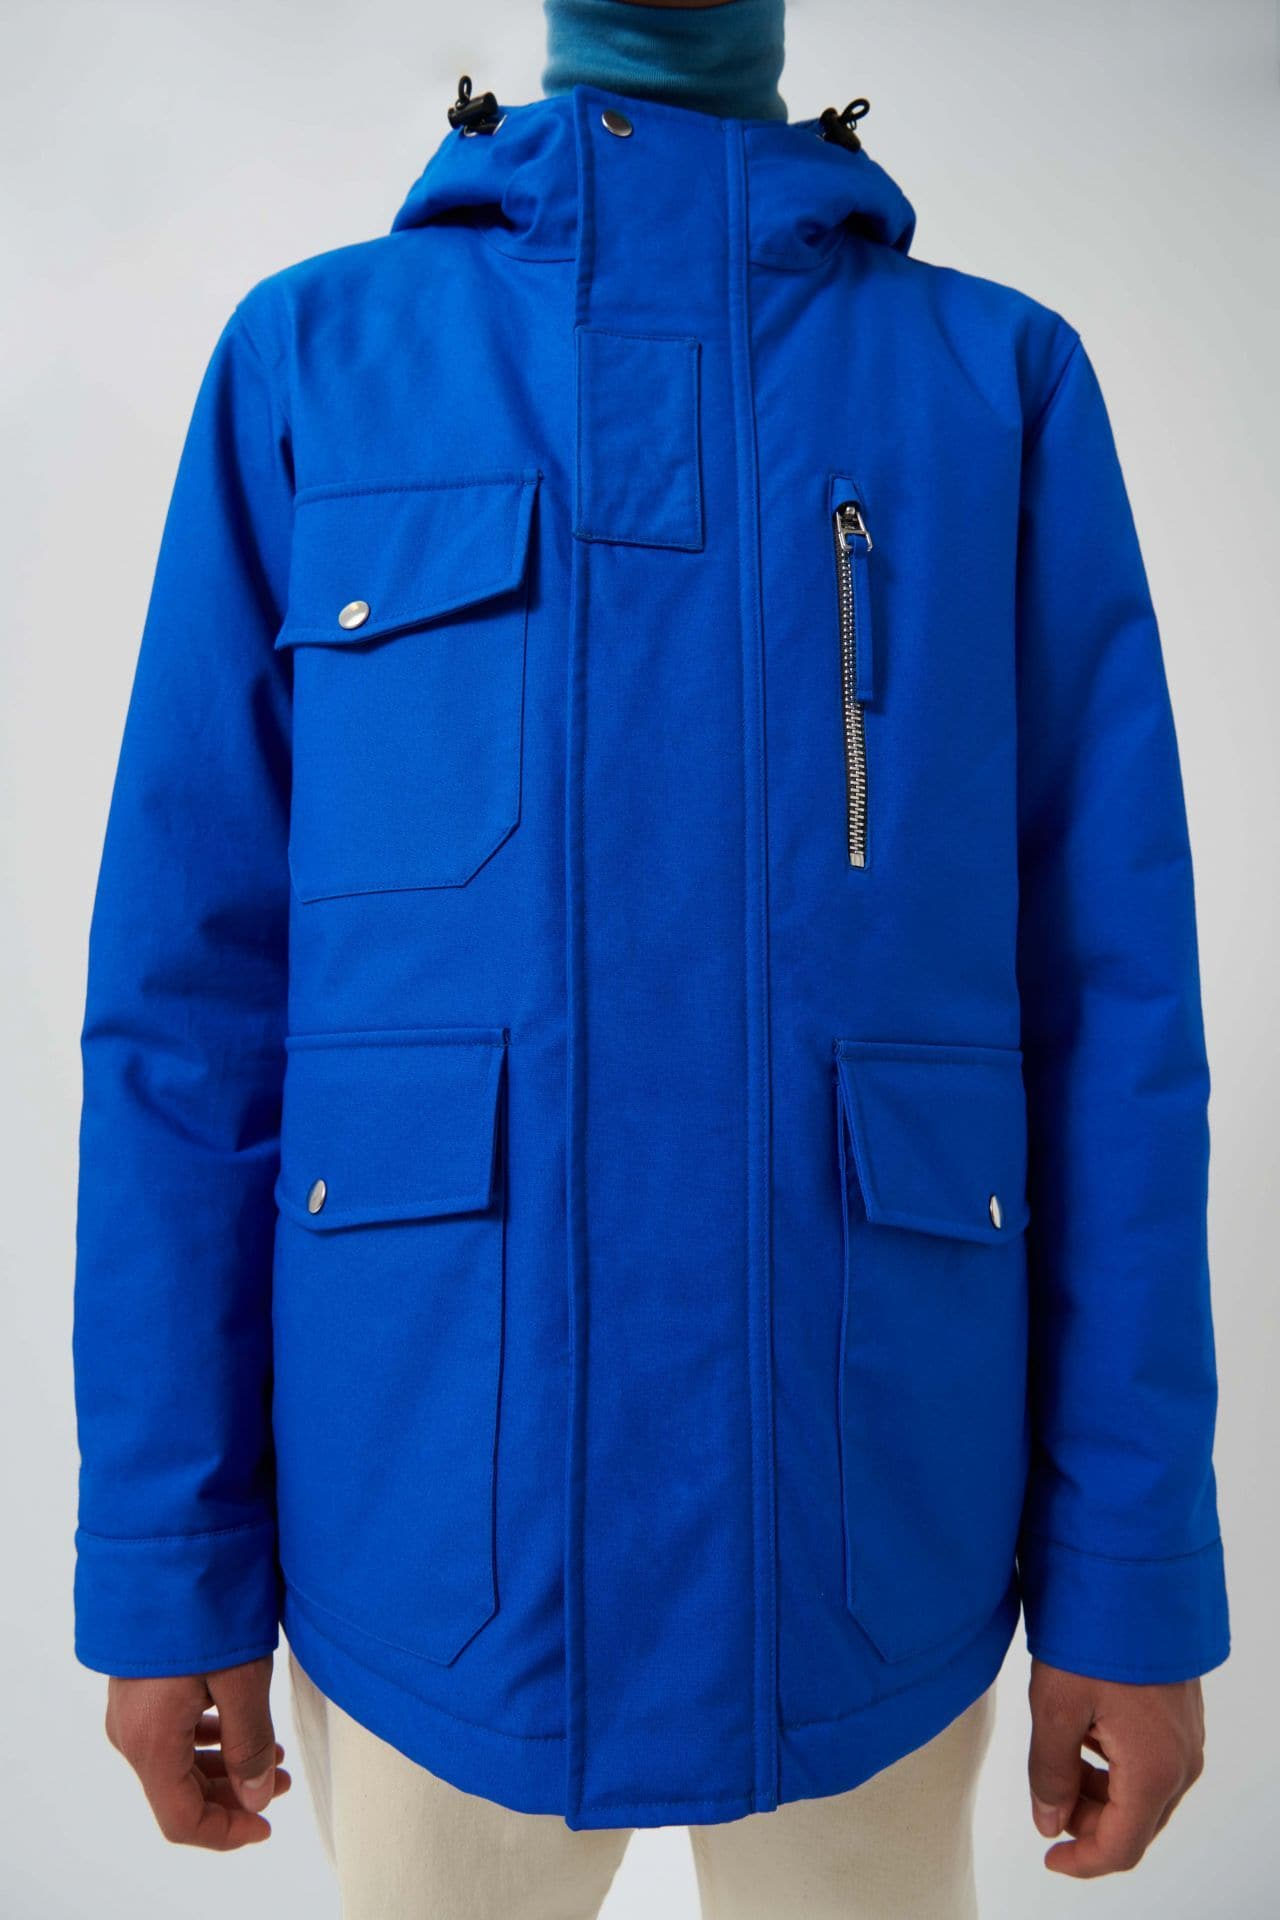 classic Blue Ski Jacket - Life in Paradigm Menswear London